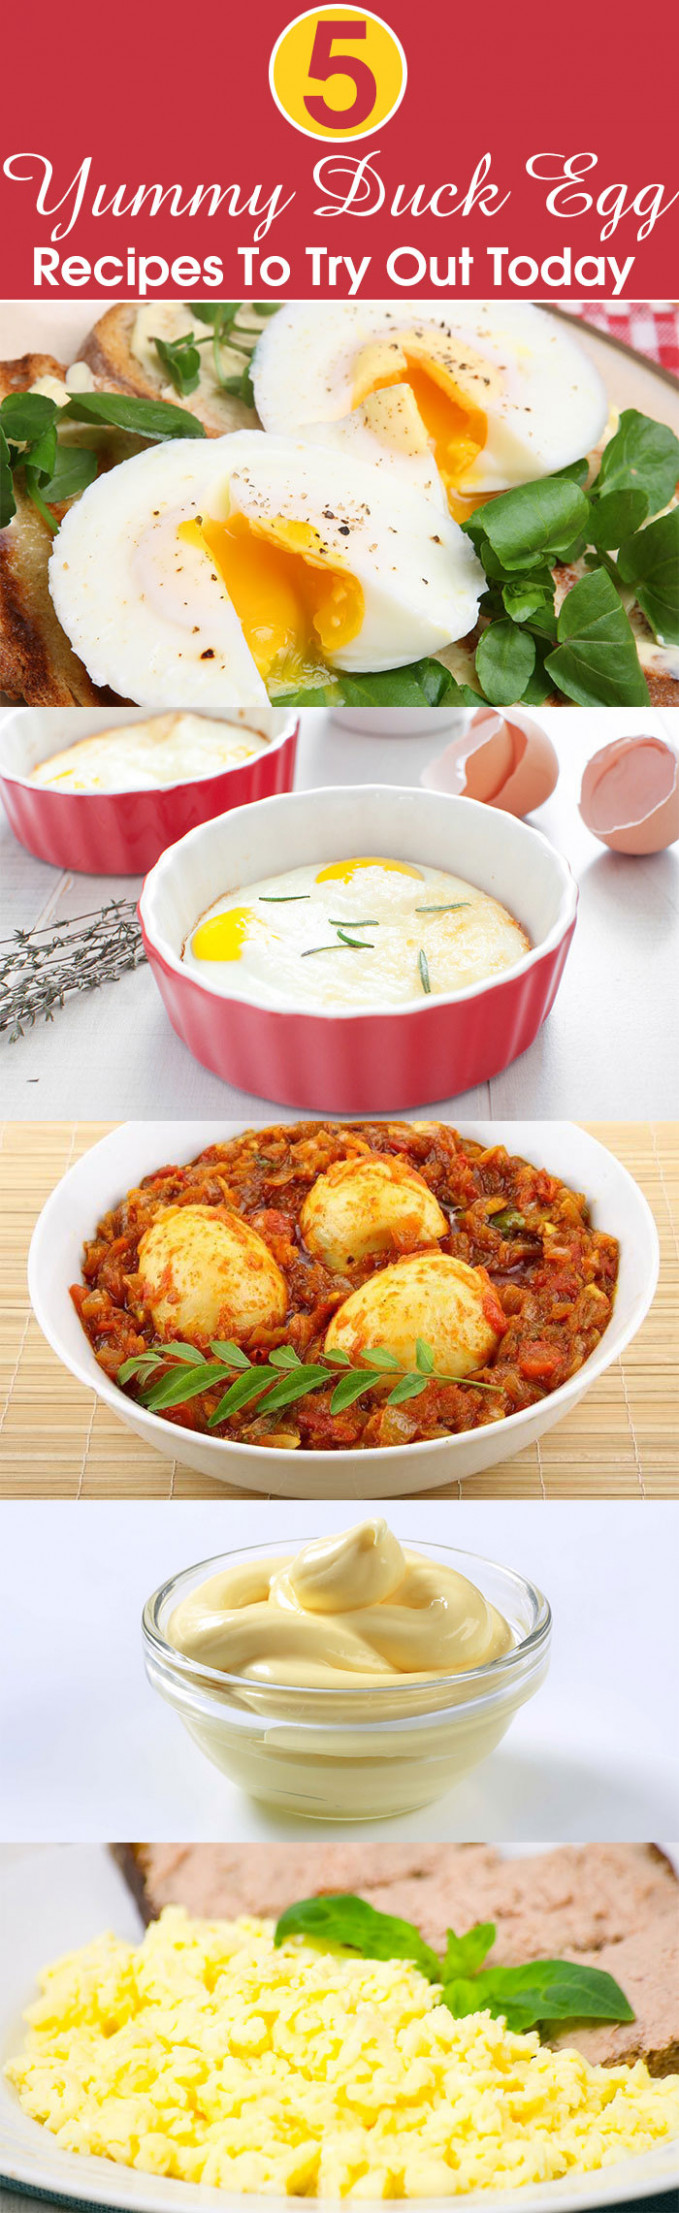 5 Yummy Duck Egg Recipes To Try Out Today | Dinner for 2 ...